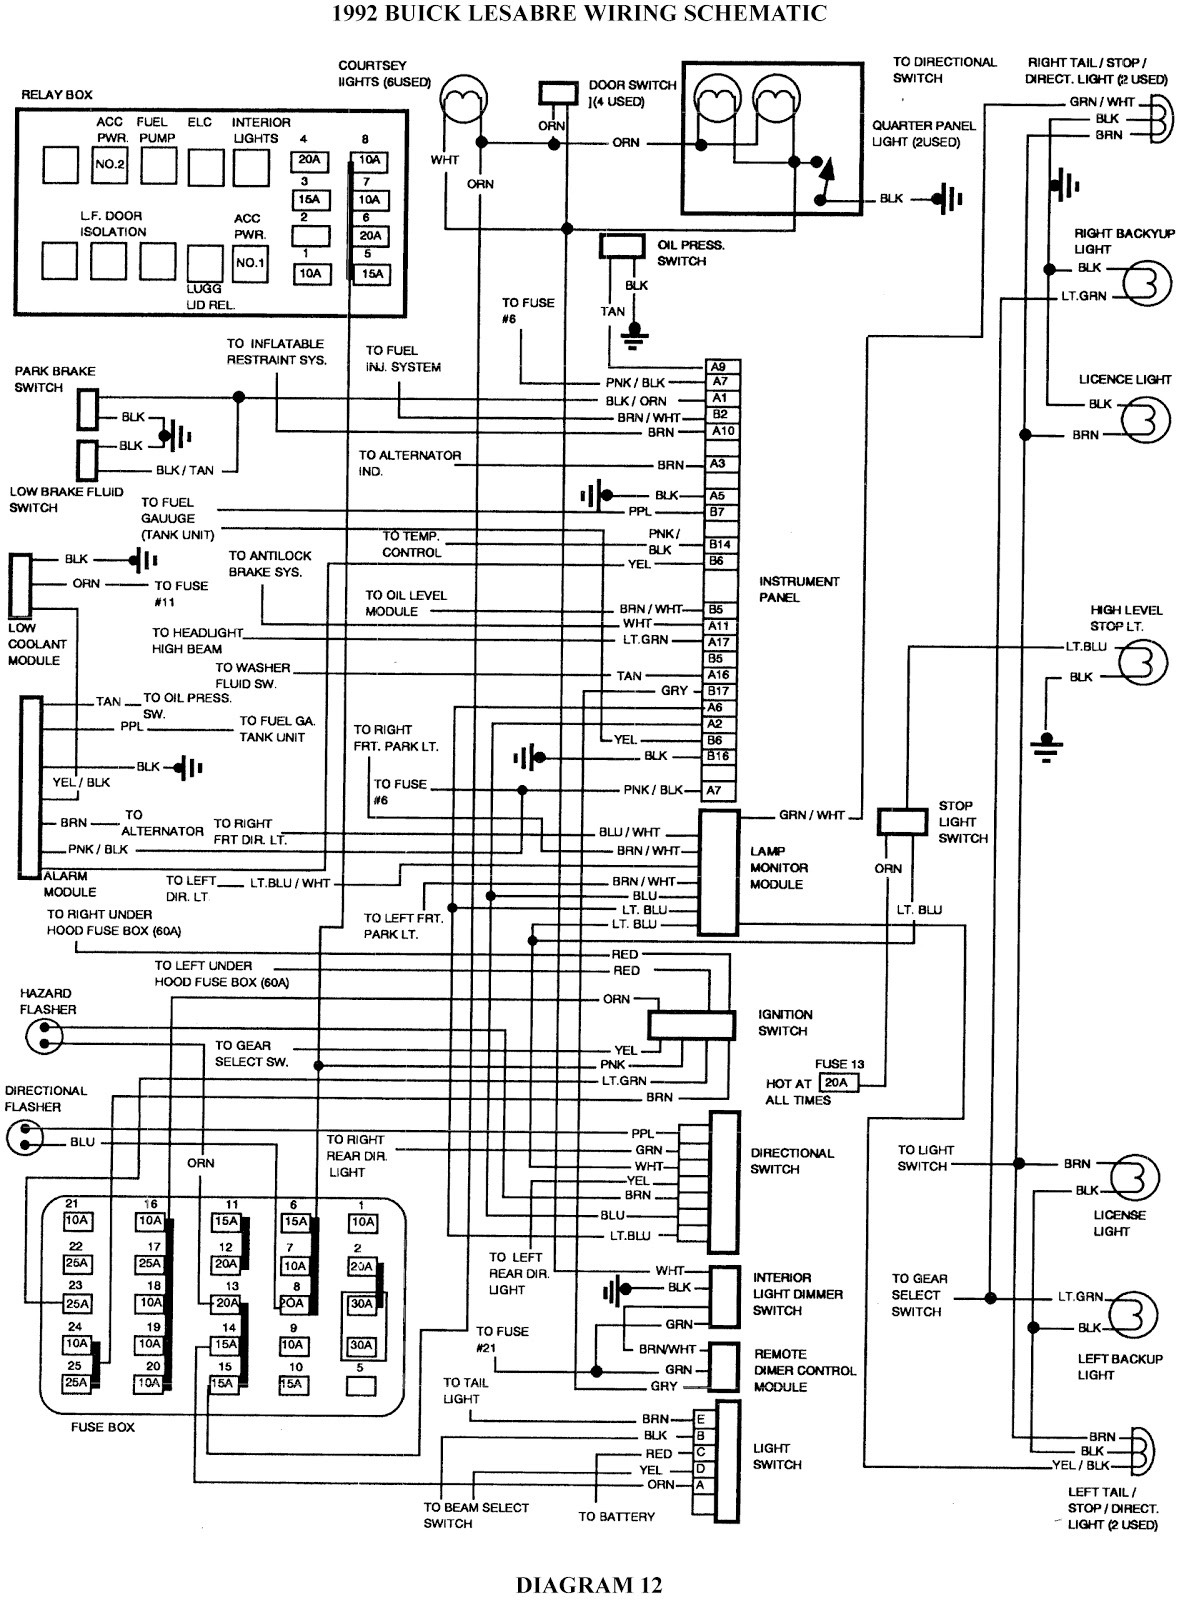 1992 buick lesabre schematic wiring diagrams schematic 2003 chevy hd stereo wiring harness 2003 mitsubishi eclipse stereo wiring harness diagram